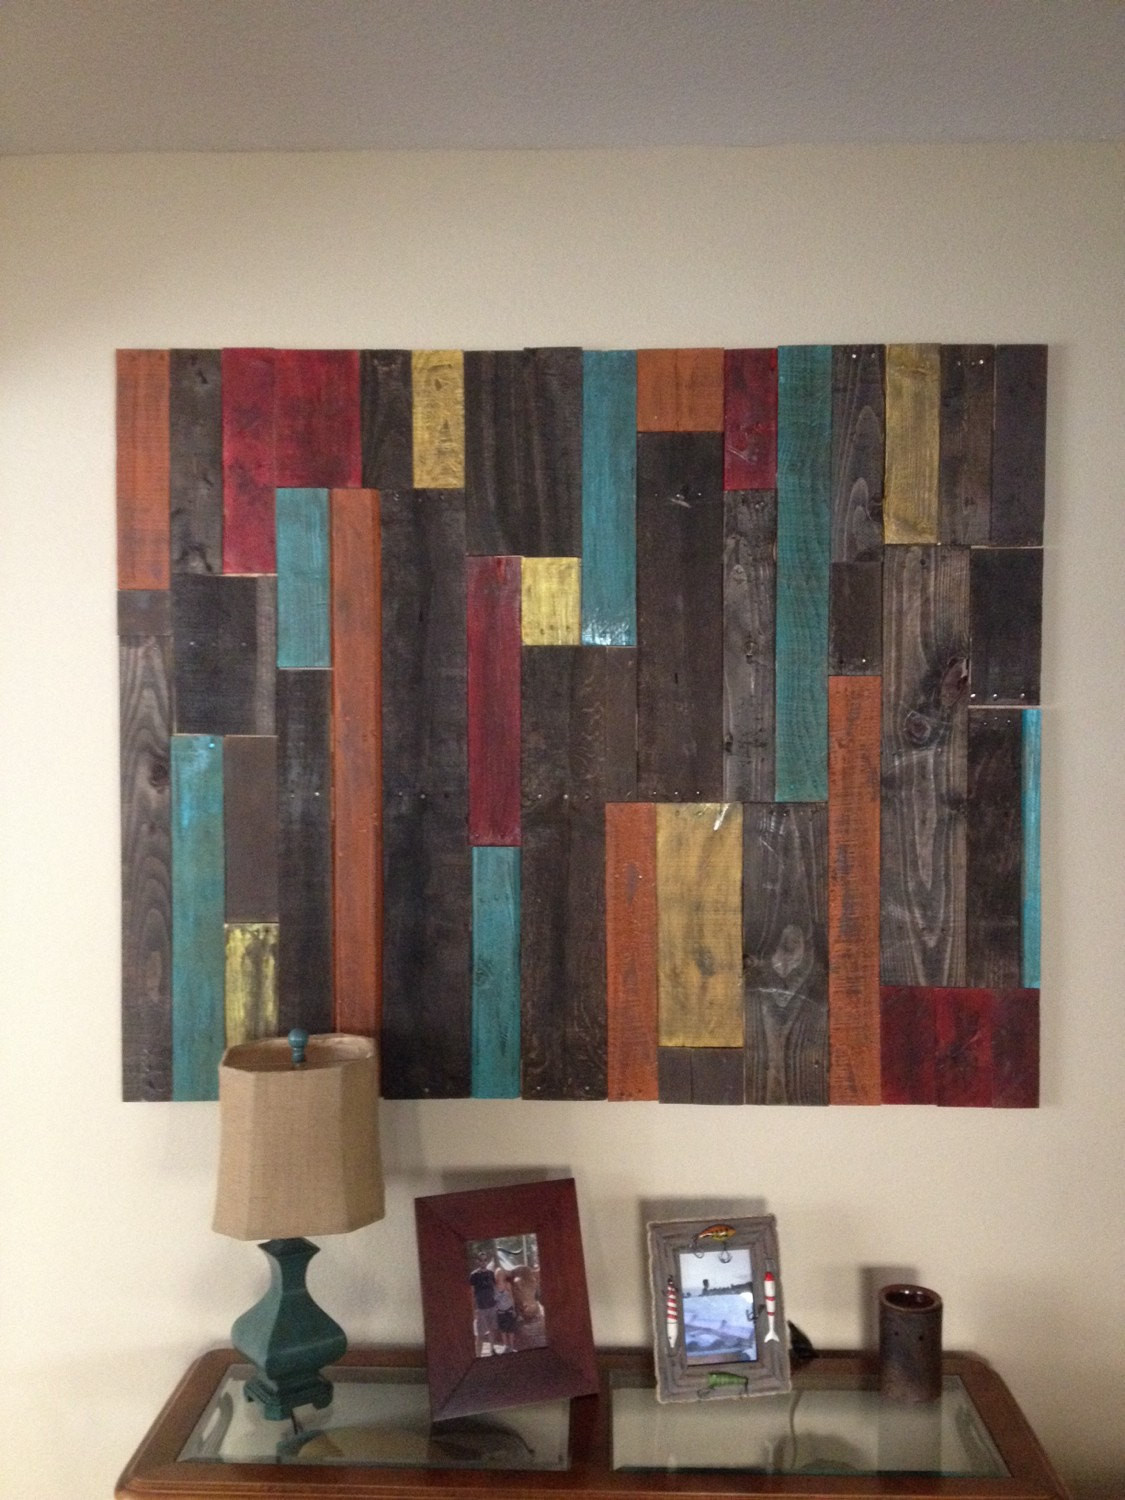 Best ideas about Pallet Wall Art . Save or Pin Distressed Pallet Wall Art Decor Now.